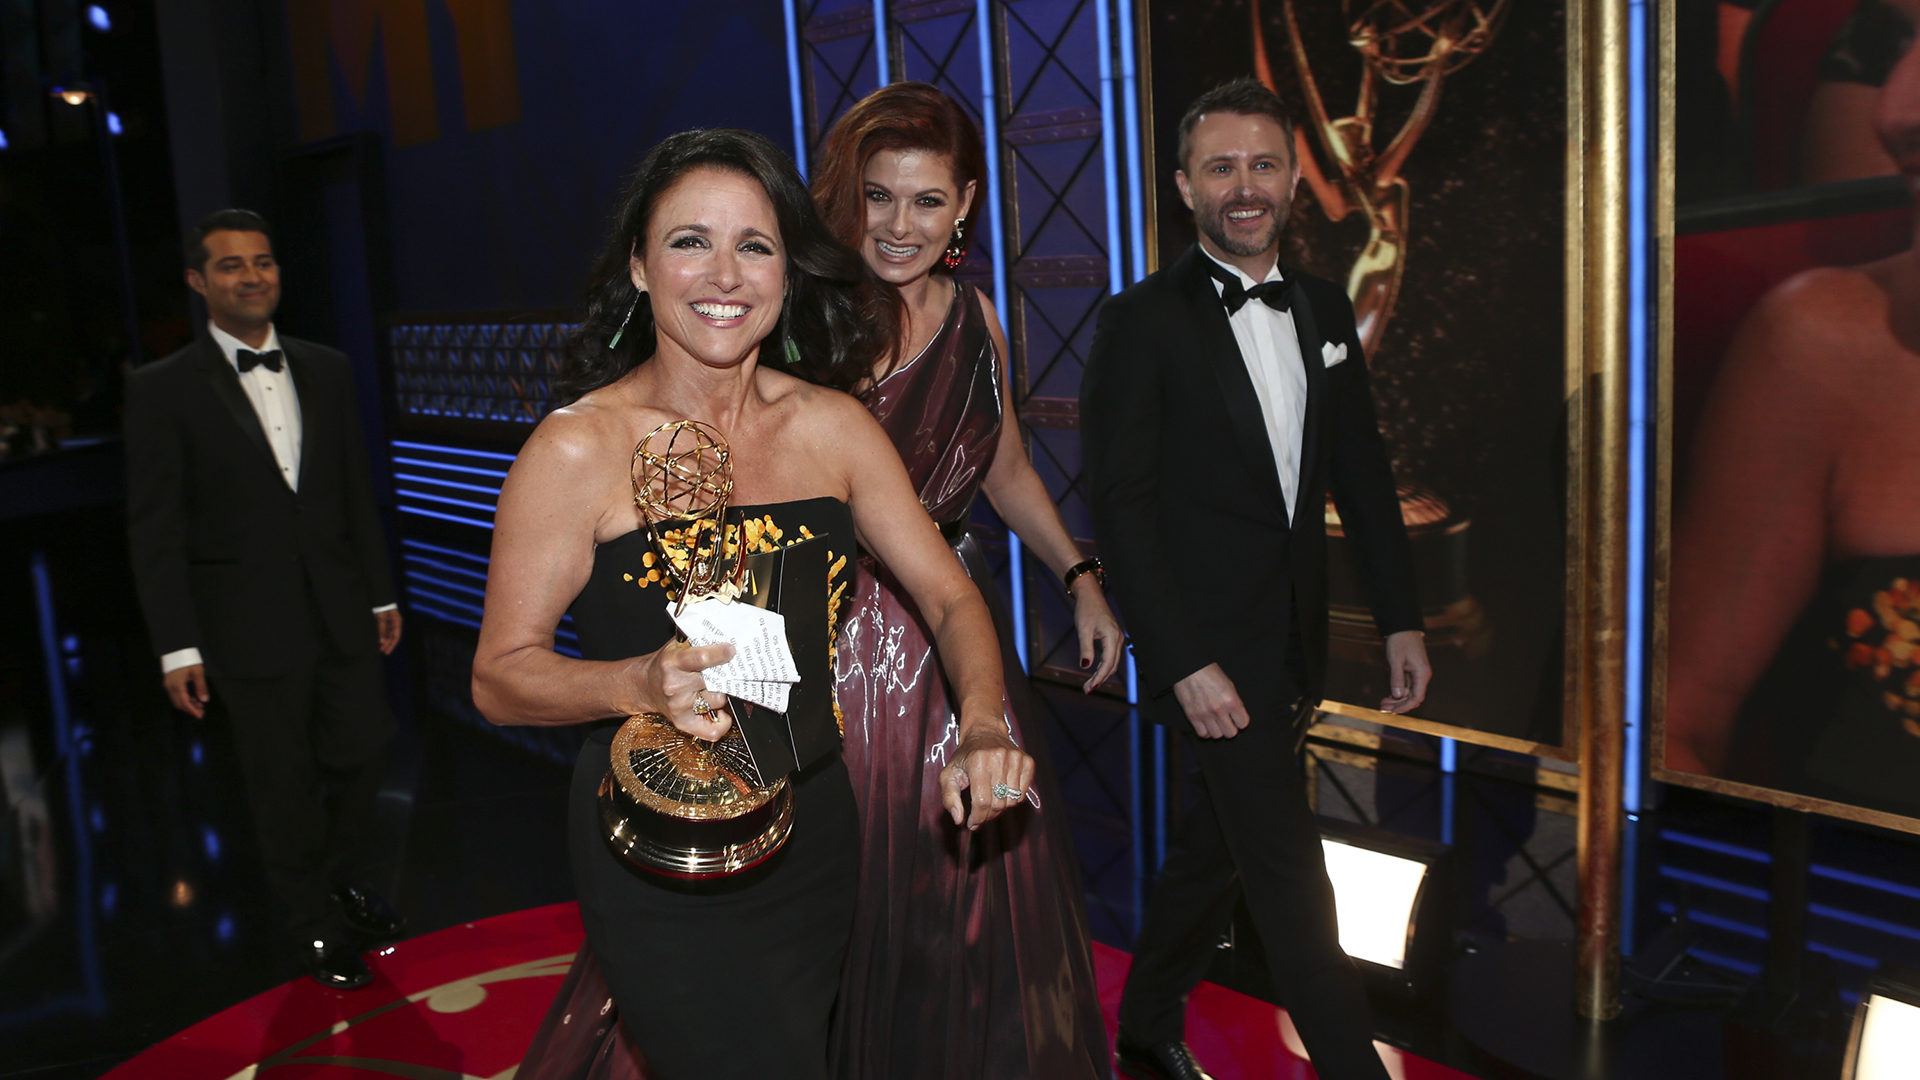 Julia Louis-Dreyfus wins Outstanding Lead Actress in a Comedy Series at The 69th Emmy Awards.